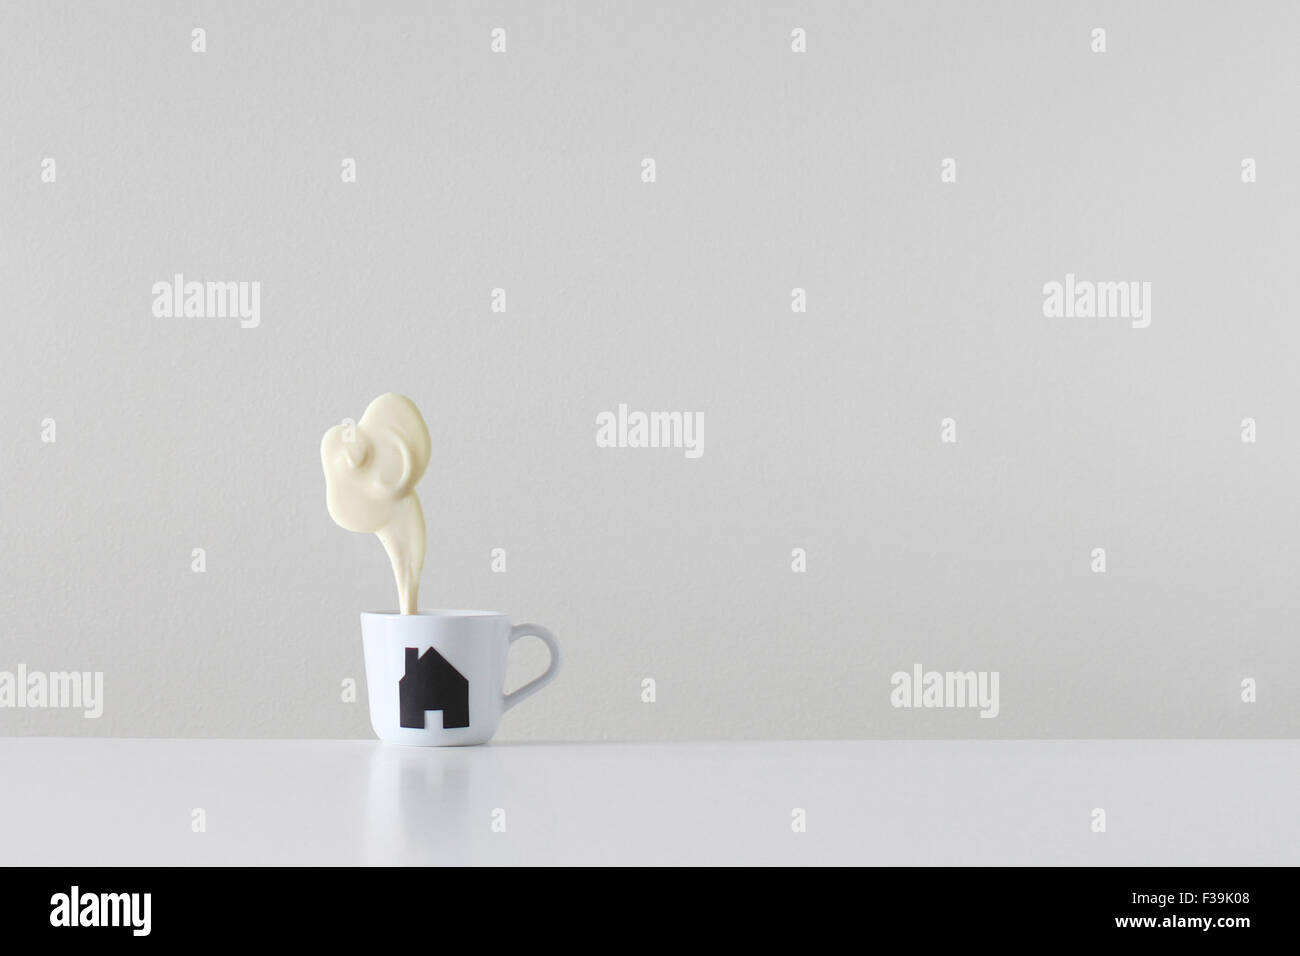 Home brew, tea cup with house silhouette print and steam made of white chocolate coming from the chimney - Stock Image